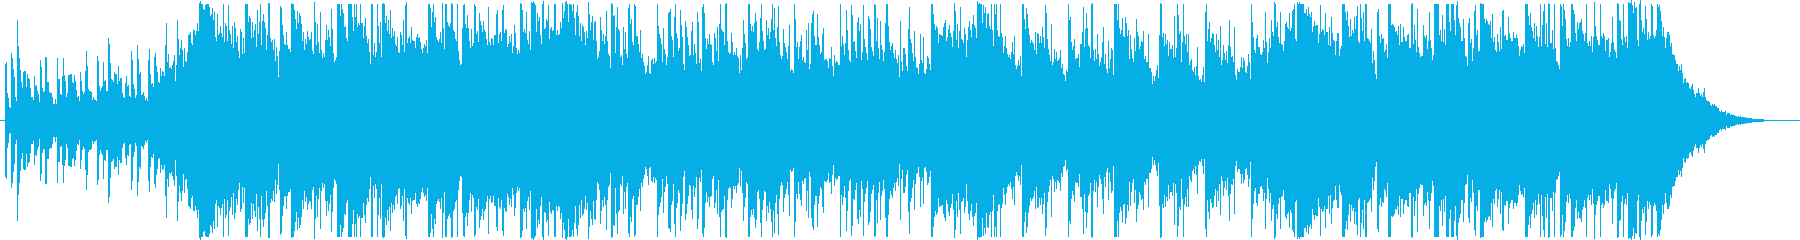 Beautiful Japanese Song's reproduced waveform